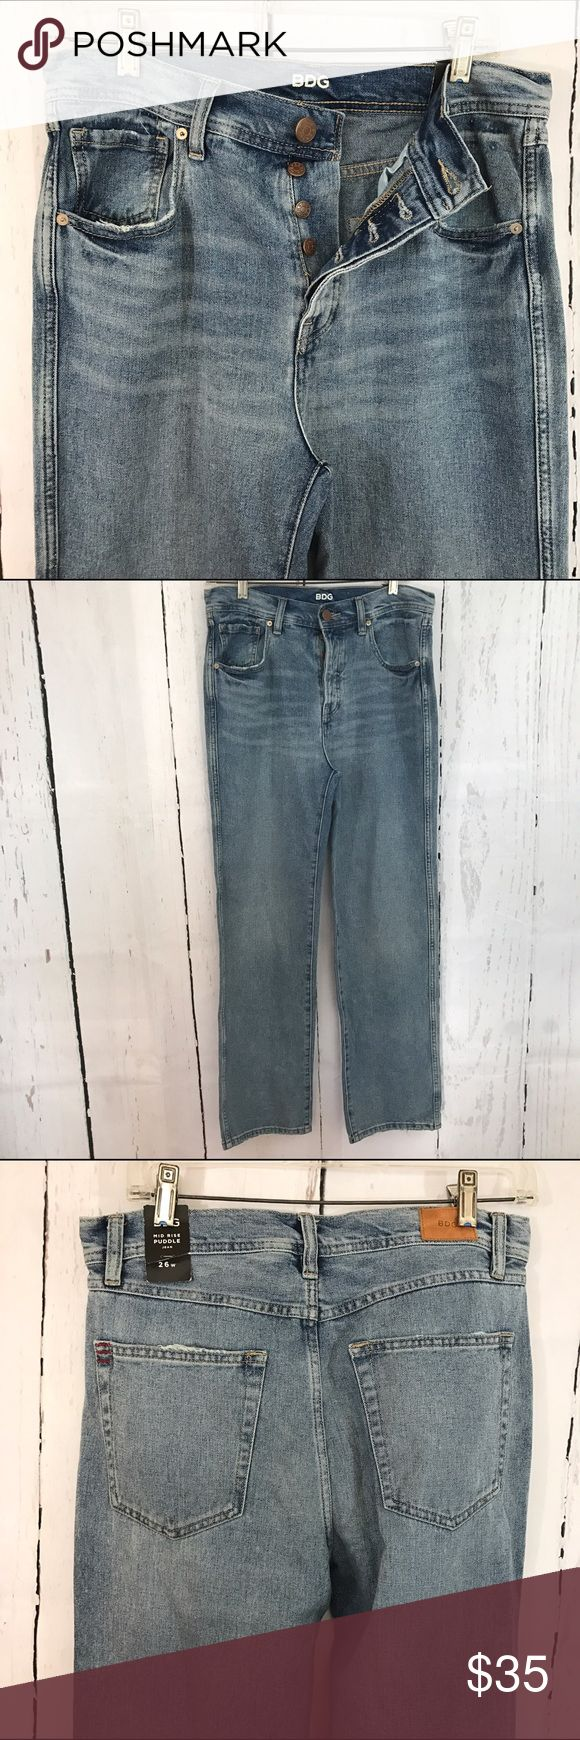 """💜💜 NWT MID RISE PUDDLE JEANS B24 Condition: New! Approximate measurements (laying flat): 15.75"""" waist 41"""" length 29.5"""" inseam  Material: 100% Cotton  Item location: bin 24   **bundles save 10%** no trades/no modeling/no asking for lowest Urban Outfitters Jeans Straight Leg"""